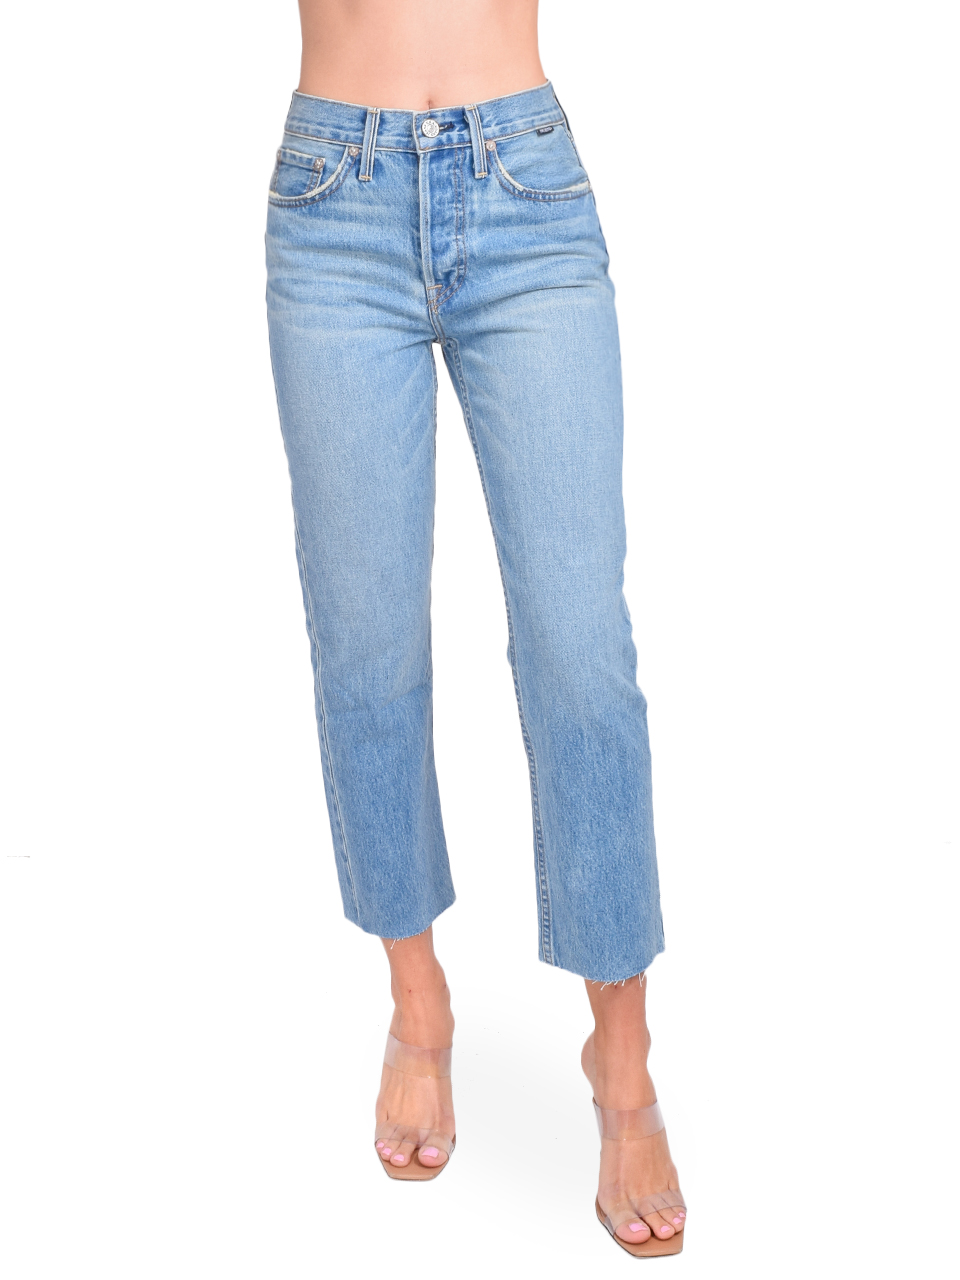 NO END Astoria High Rise Straight Crop Jean Front View  X1https://cdn11.bigcommerce.com/s-3wu6n/products/33347/images/110171/106__85559.1597879892.244.365.jpg?c=2X2